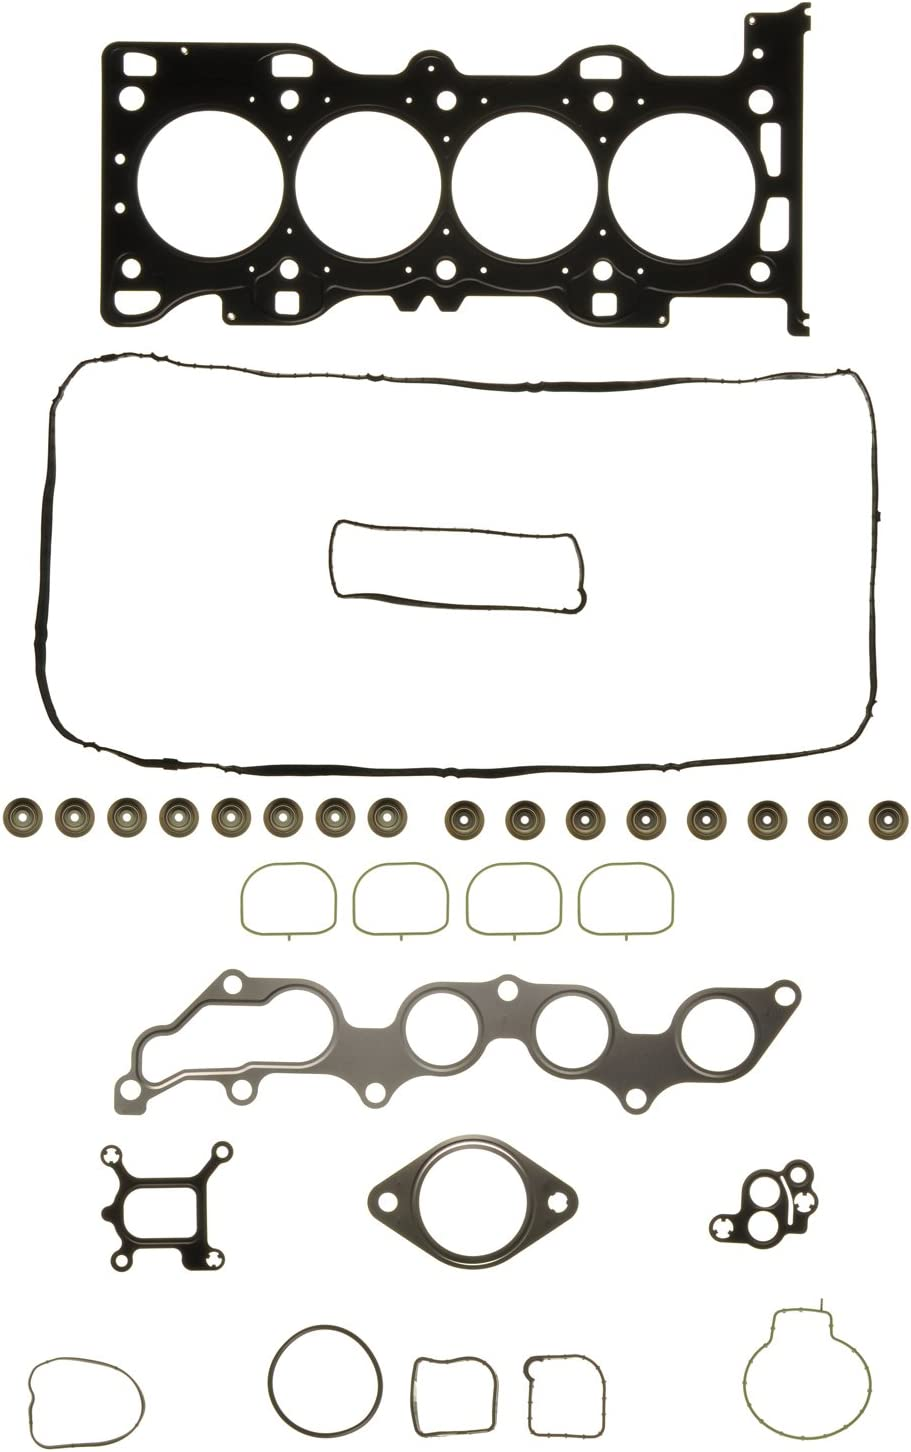 Ajusa 52264500 Gasket 2021new shipping free shipping Max 64% OFF head Set cylinder